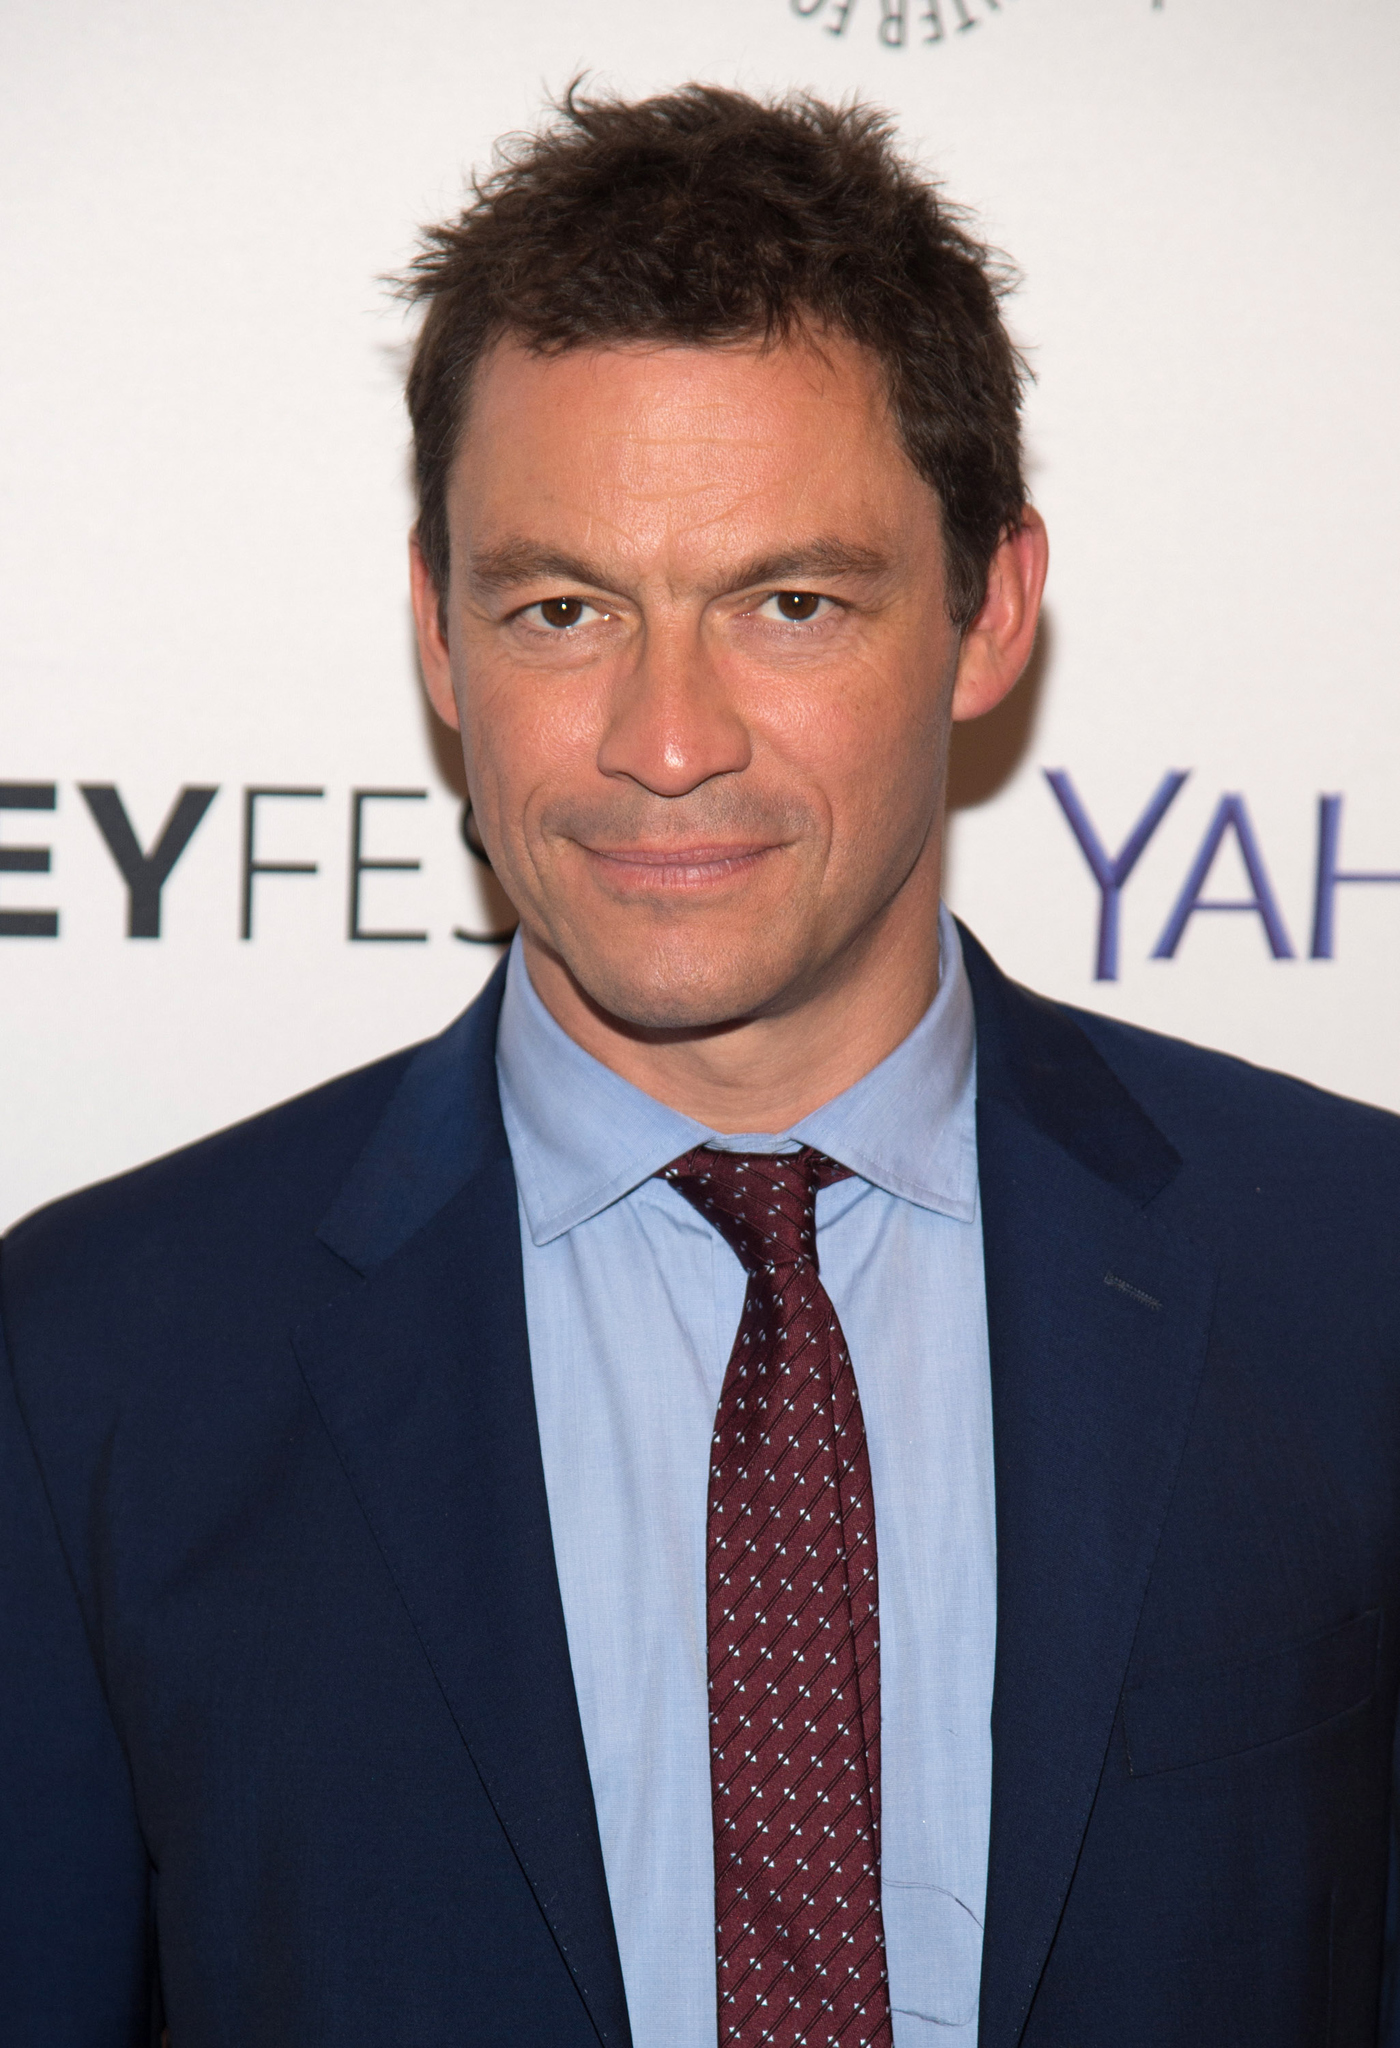 Dominic West at an event for The Affair (2014)